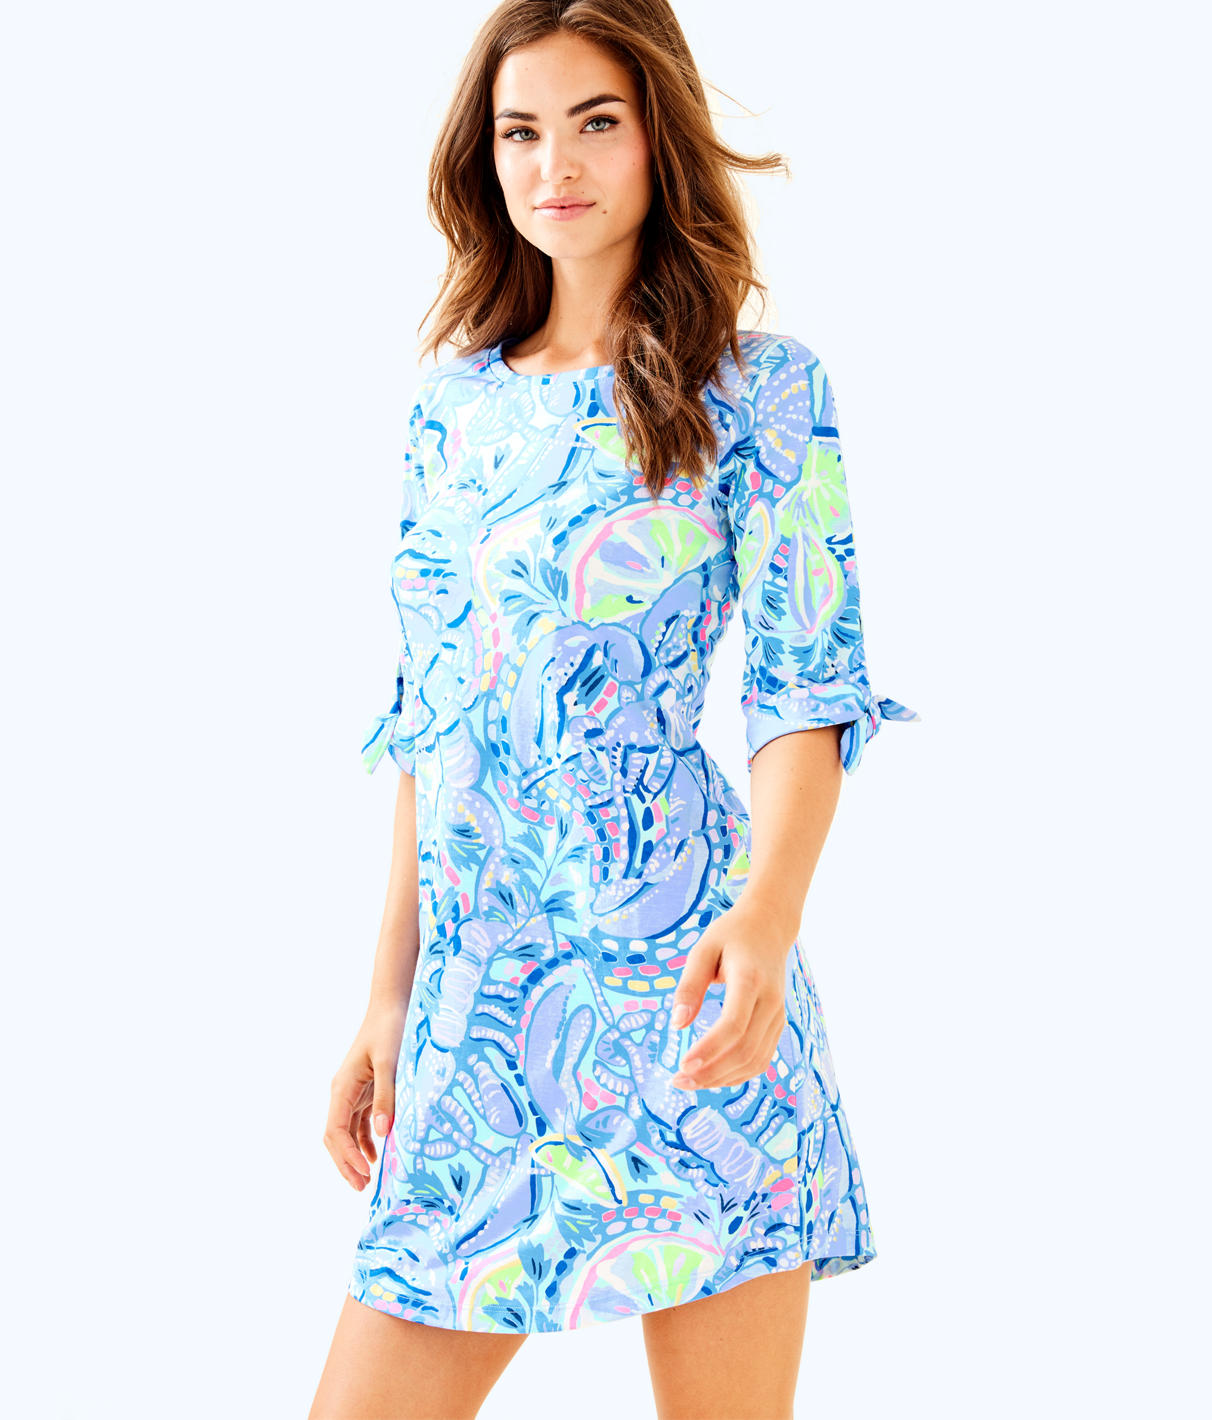 Lilly Pulitzer Lilly Pulitzer Womens Preston Dress